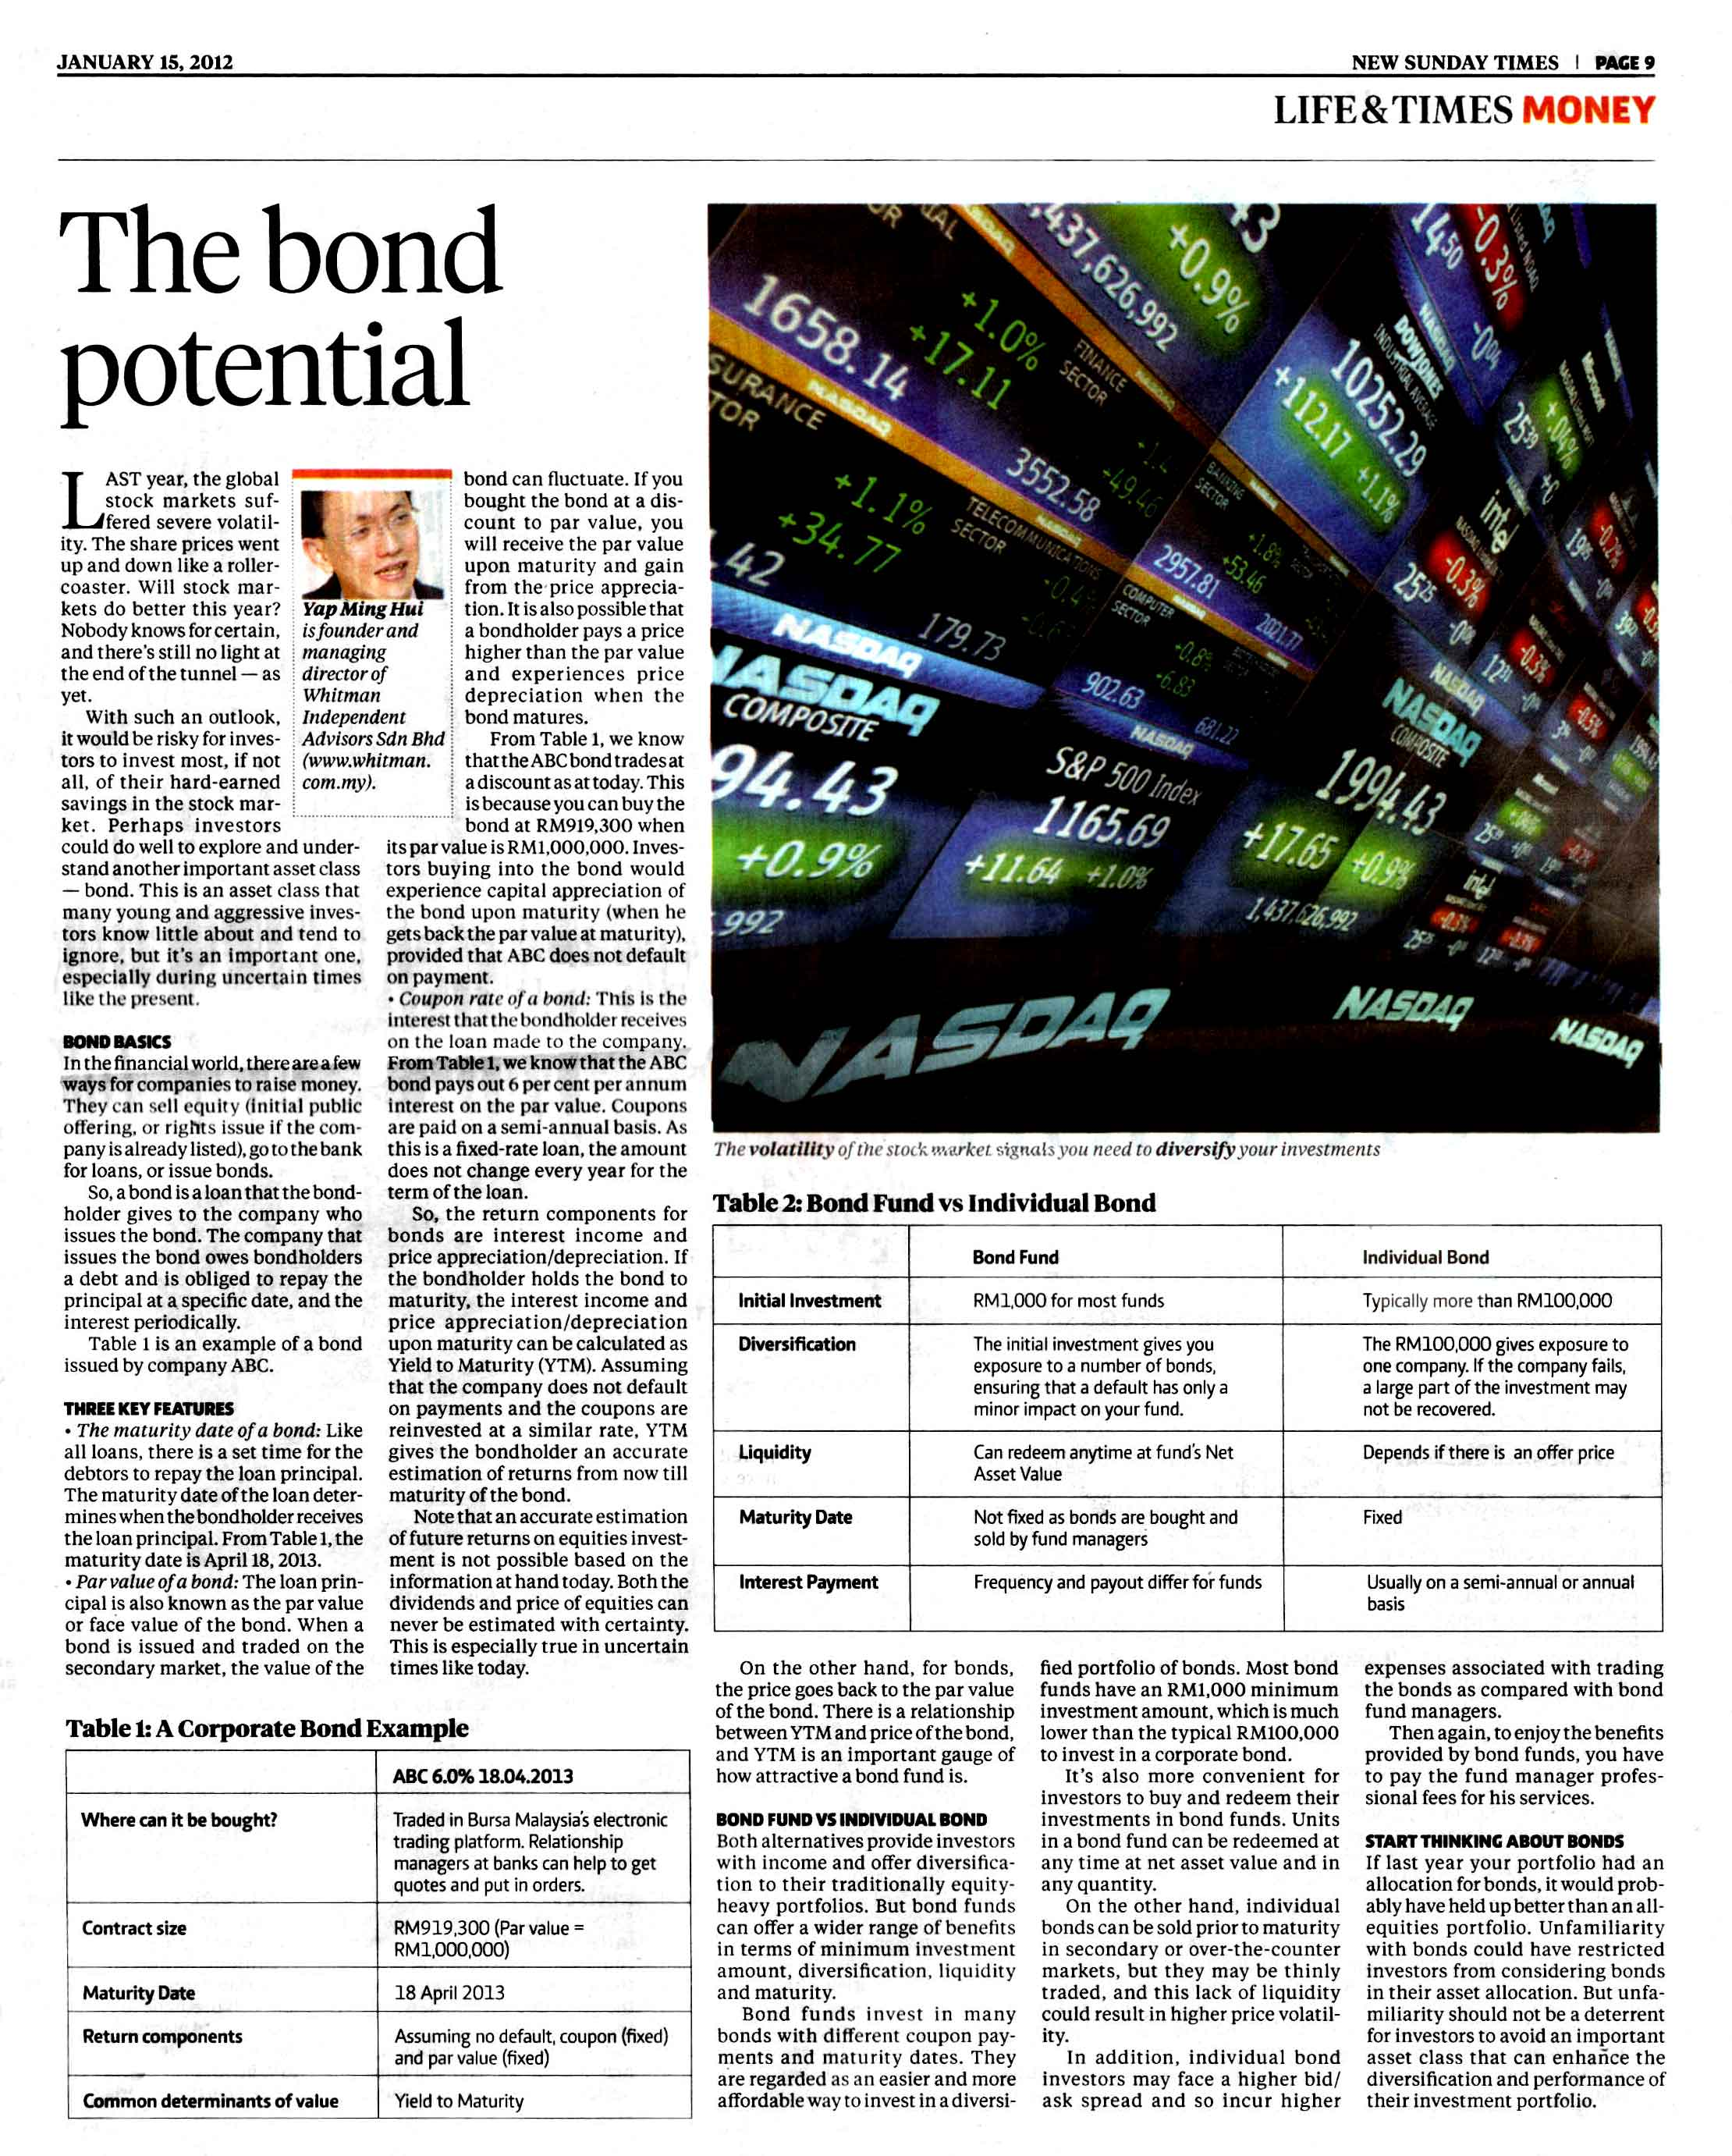 The Bond Potential - 16 Jan 2012